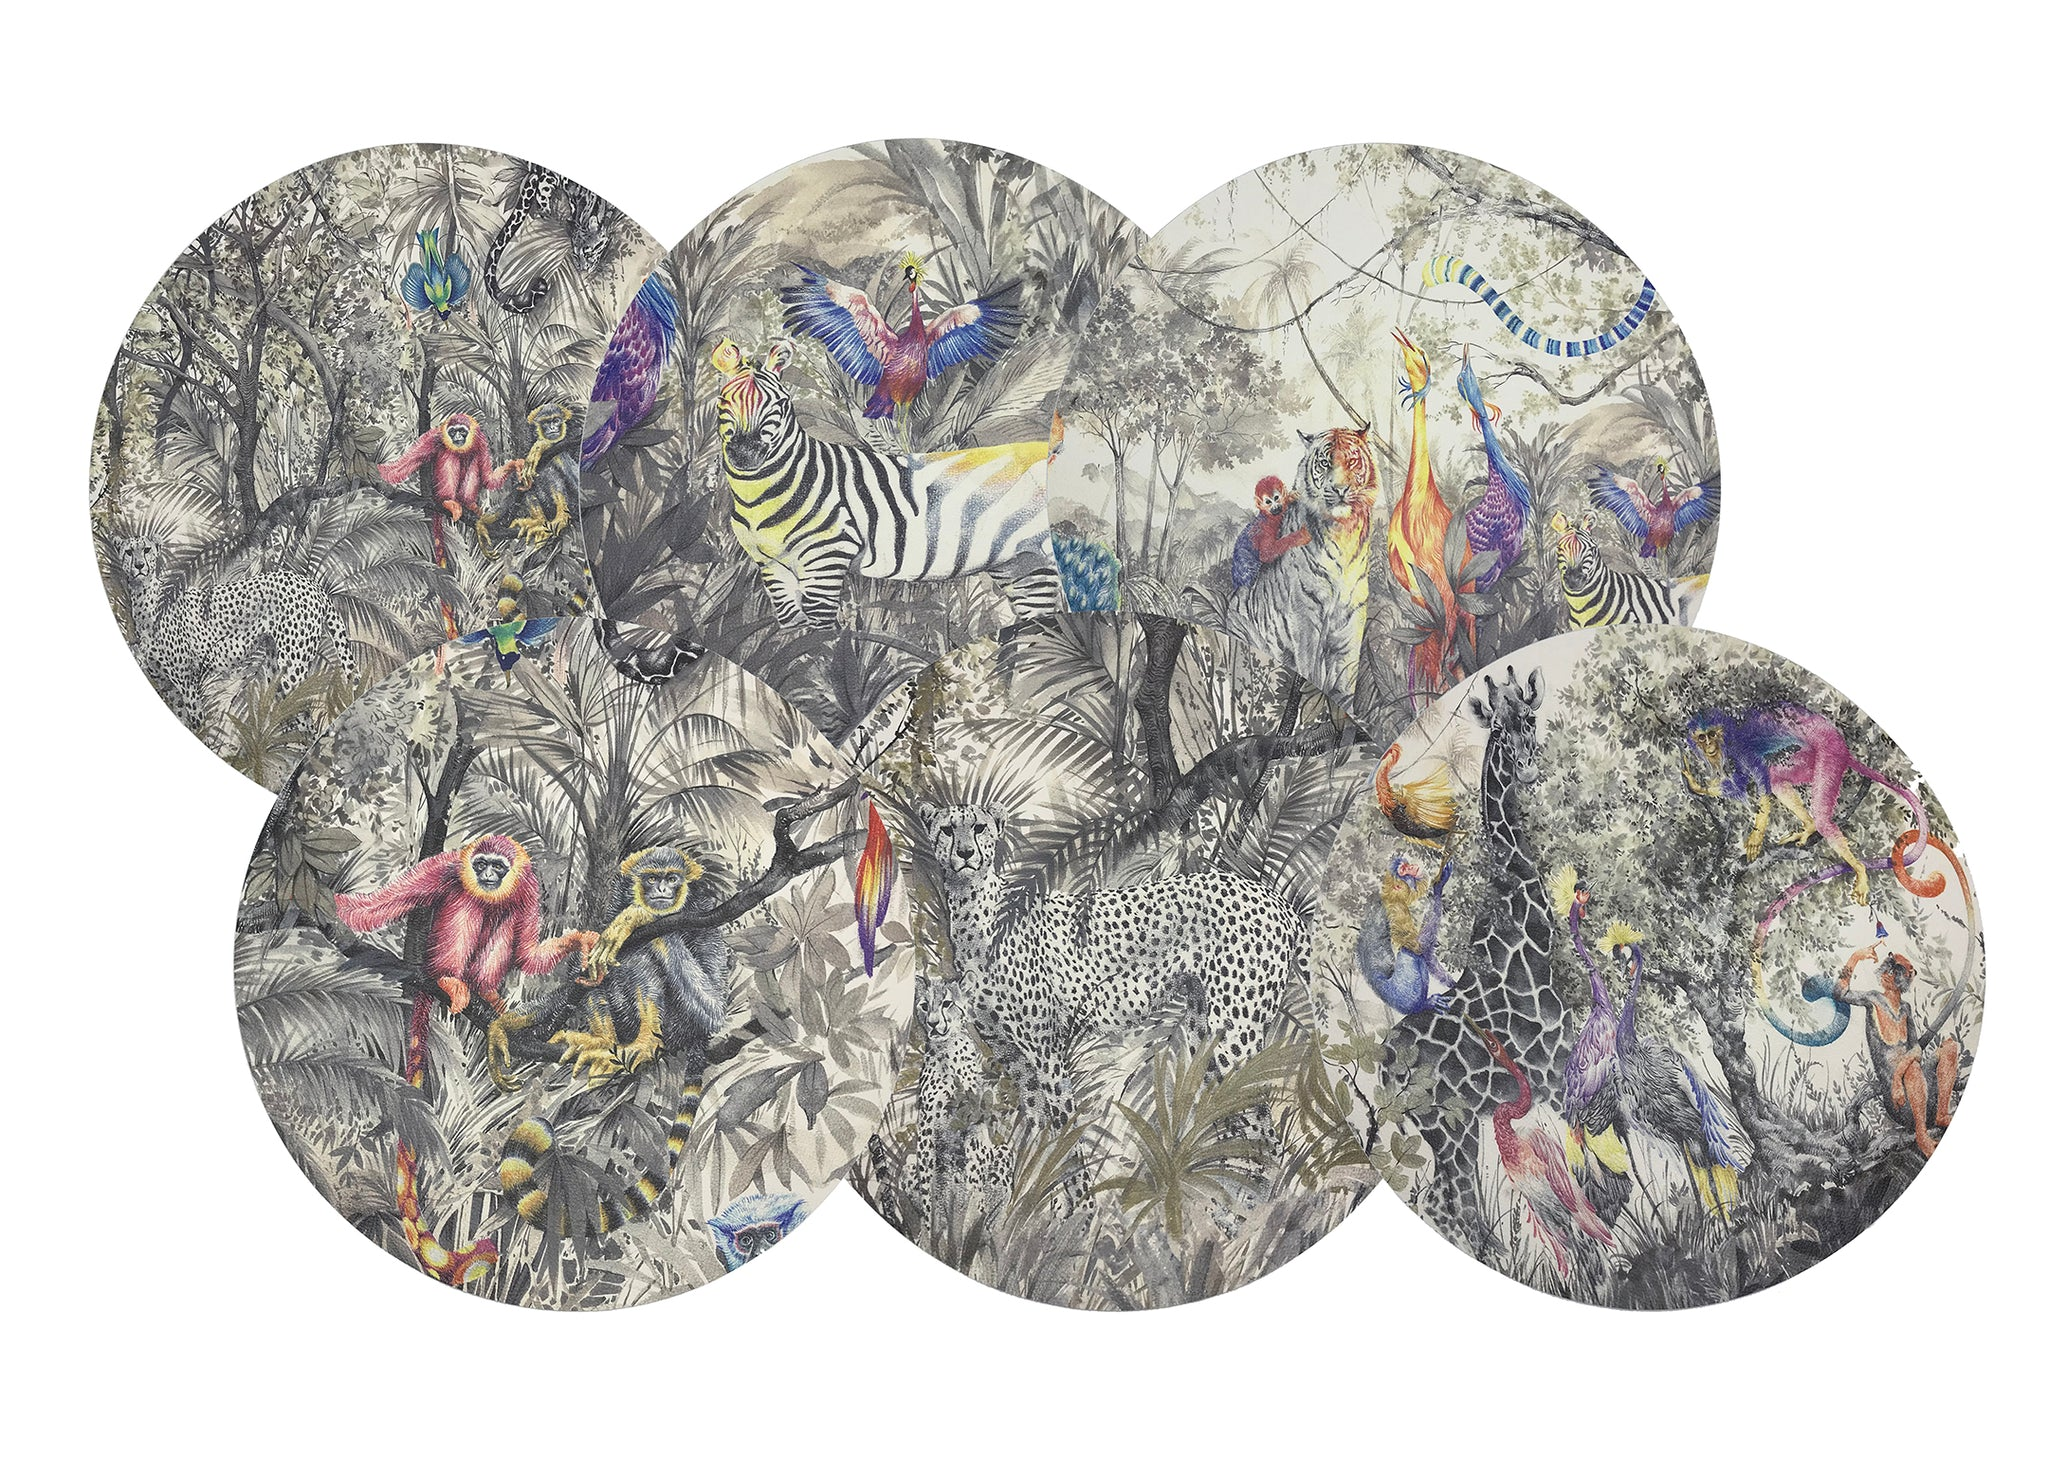 Arcadia Animalia Jungle Collection of Mixed Hand Painted animals in a fantastical Eden-like Jungle Scenic.